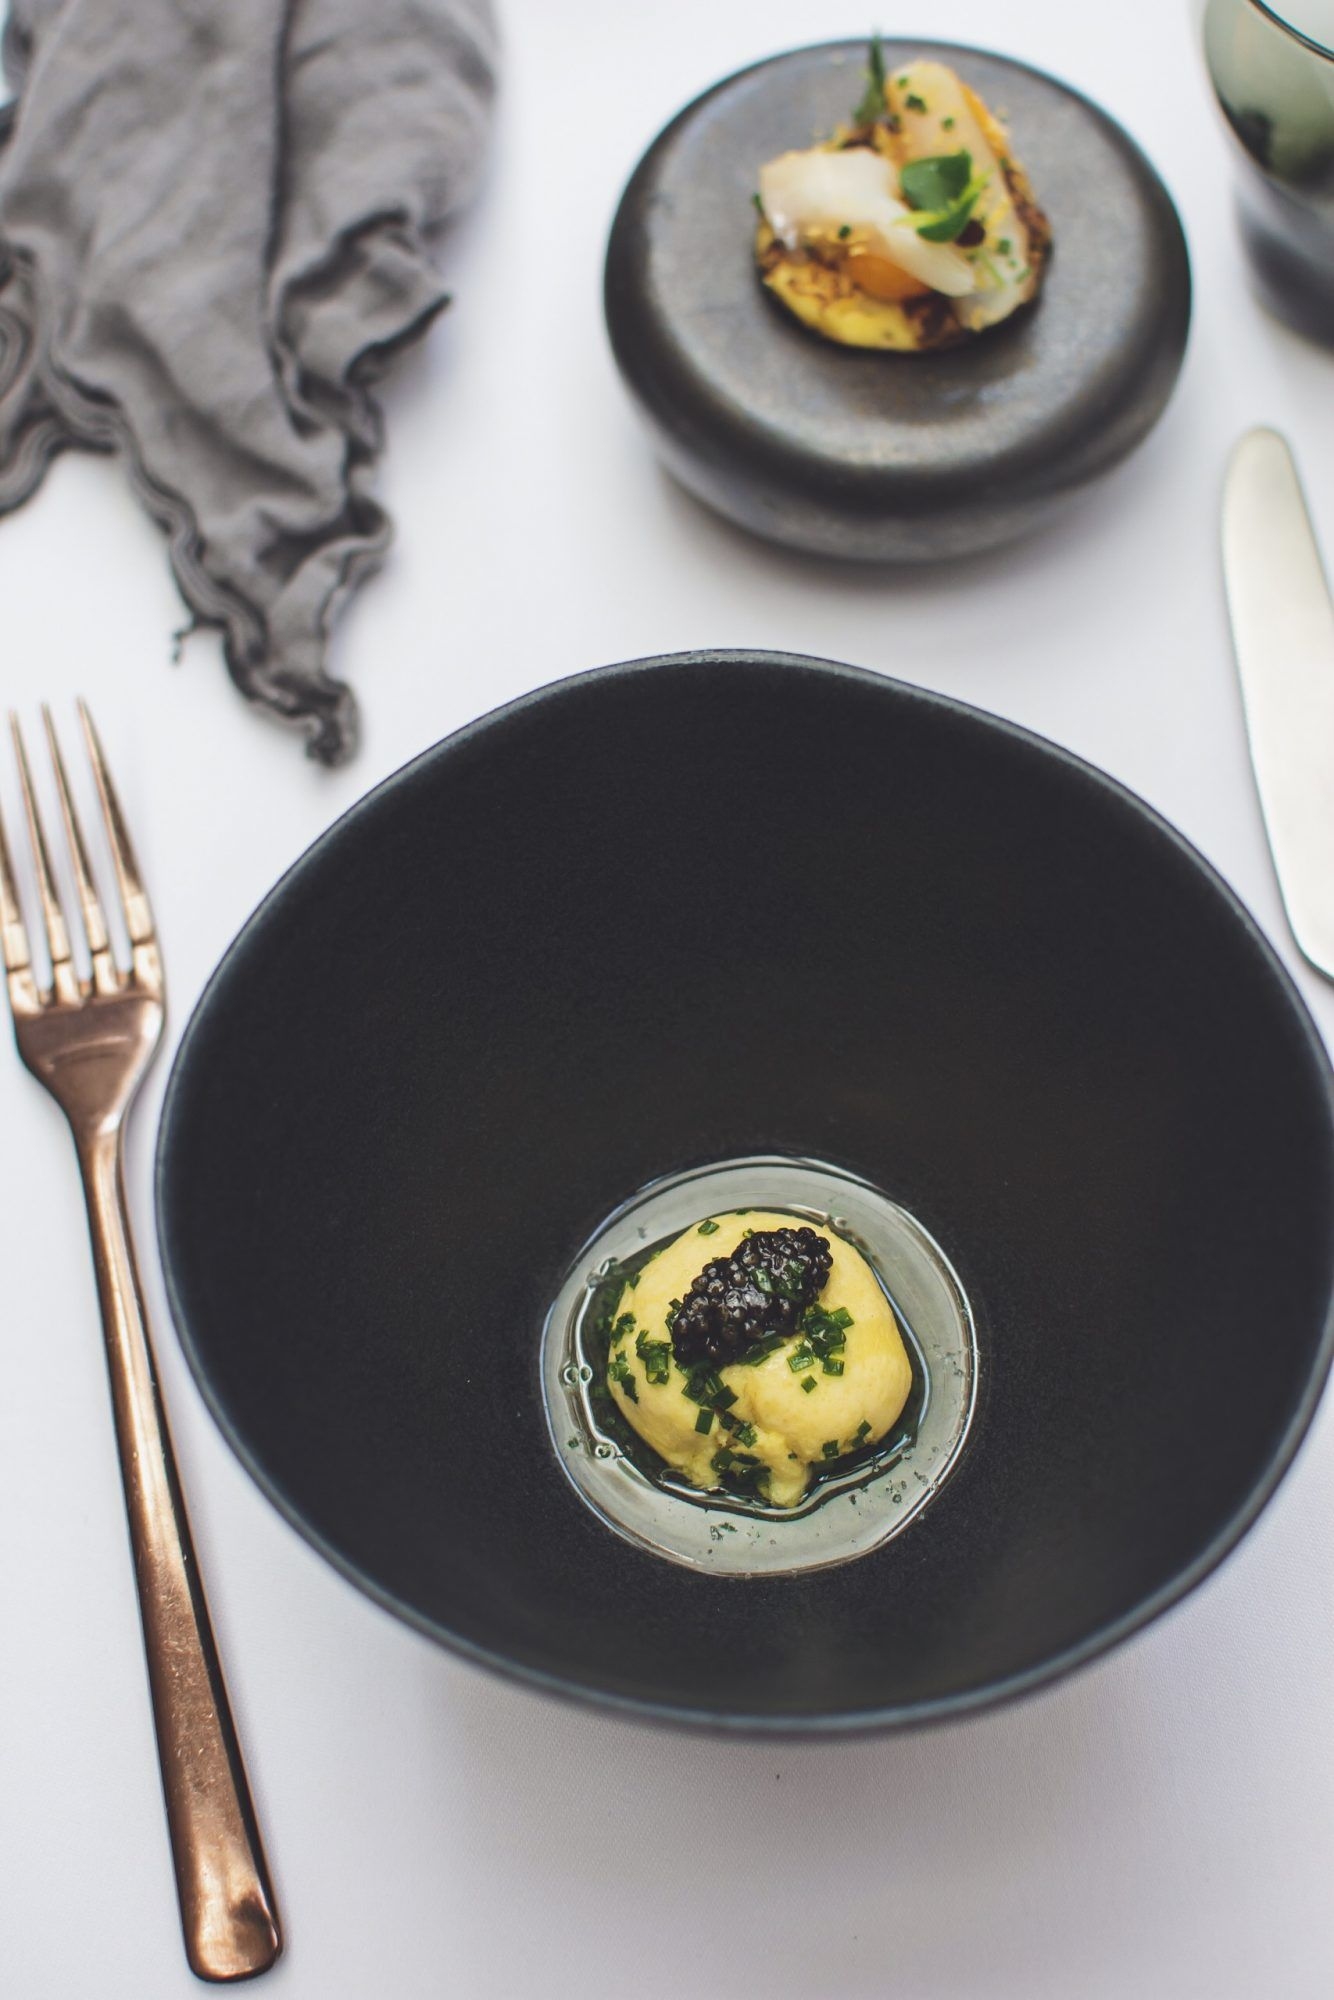 Omelette Arnold Bennet, chive oil, caviar